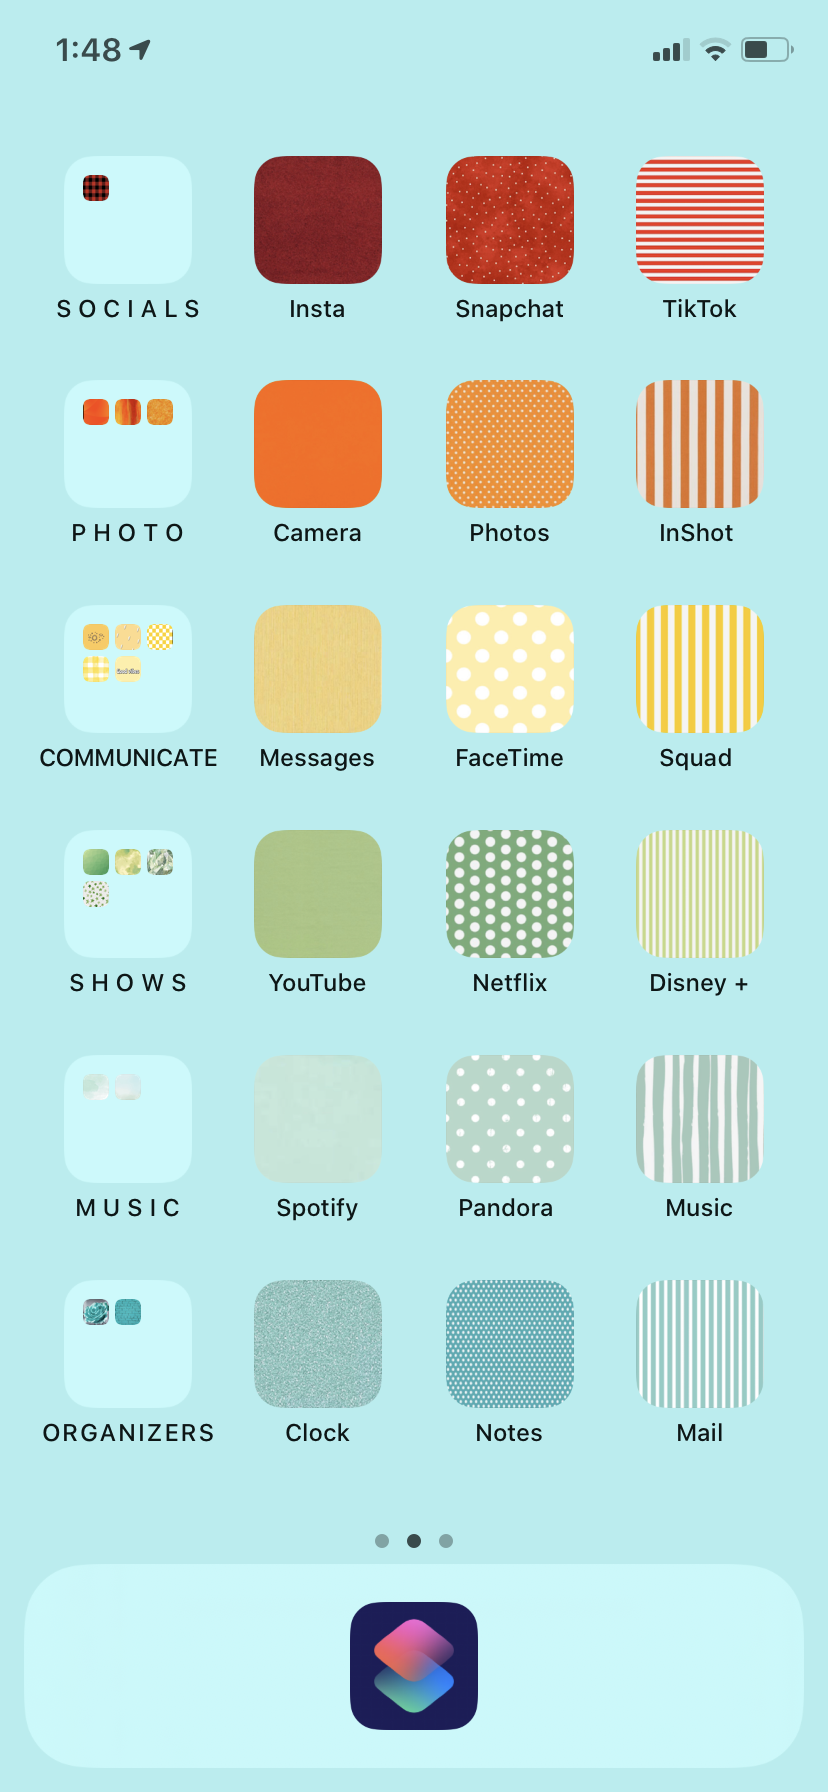 A Way To Organize Your Phone In 2020 Phone Apps Iphone Homescreen Iphone Homescreen